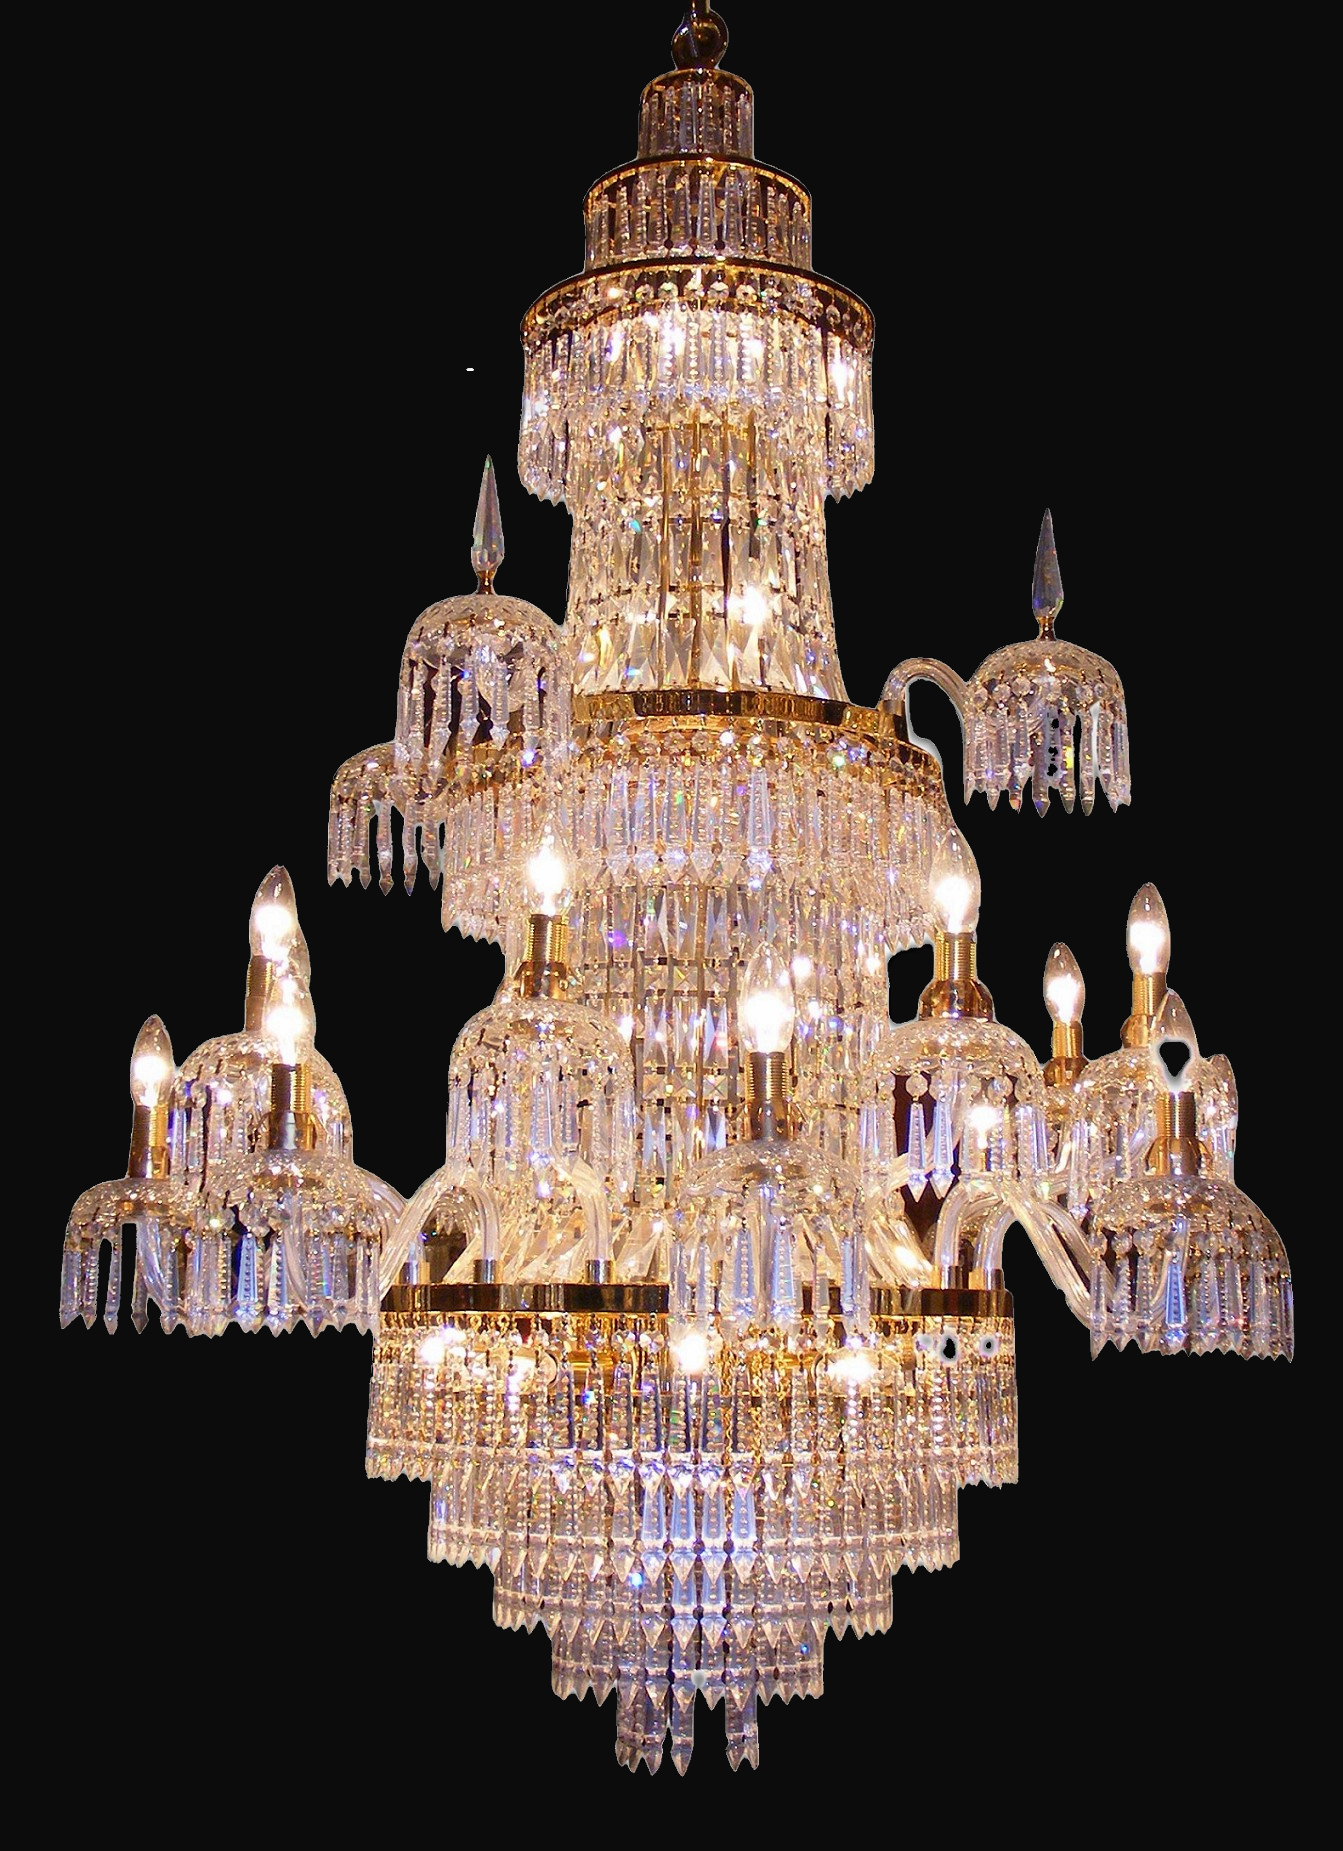 24 Crt Gold Plated Chandelier